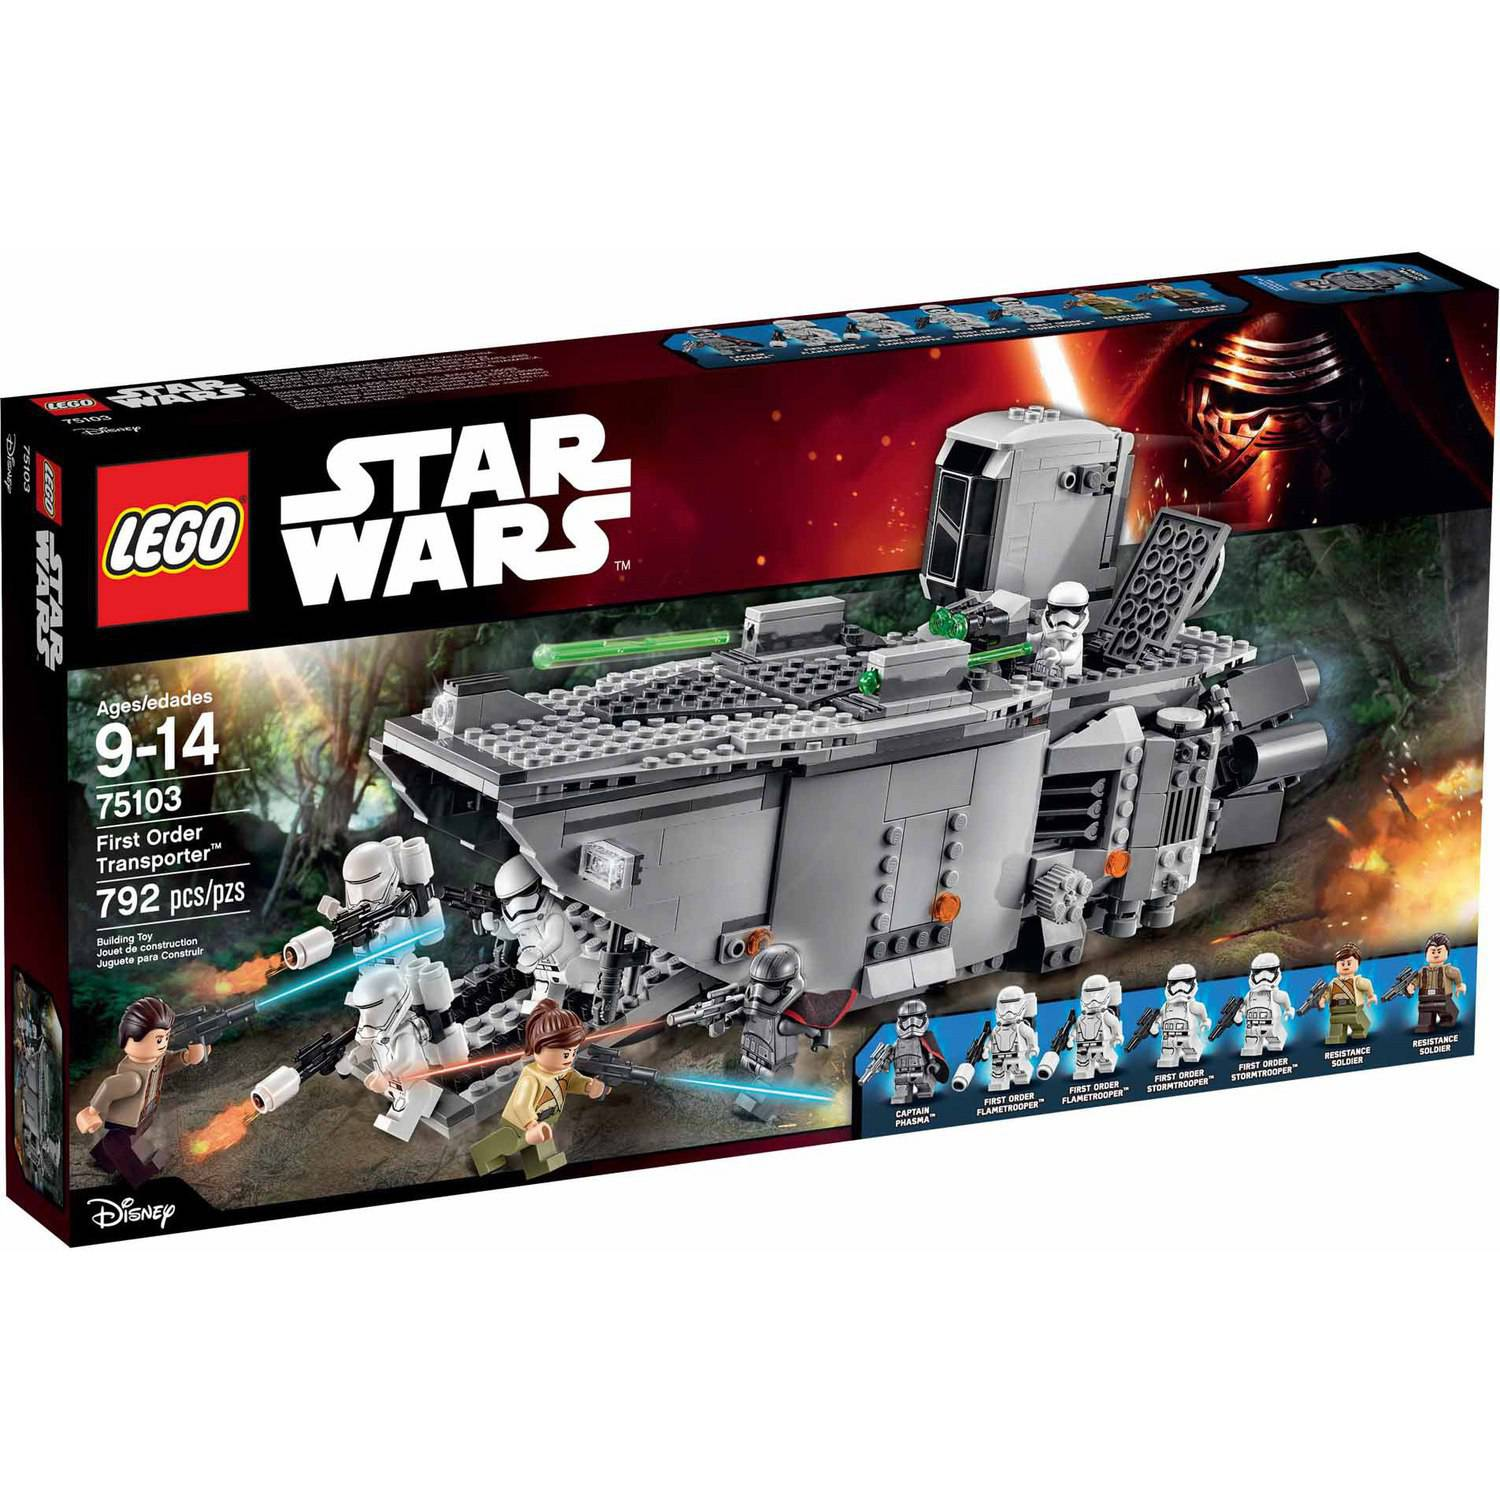 "LEGO Star Wars First Order Transporter"" 75103"